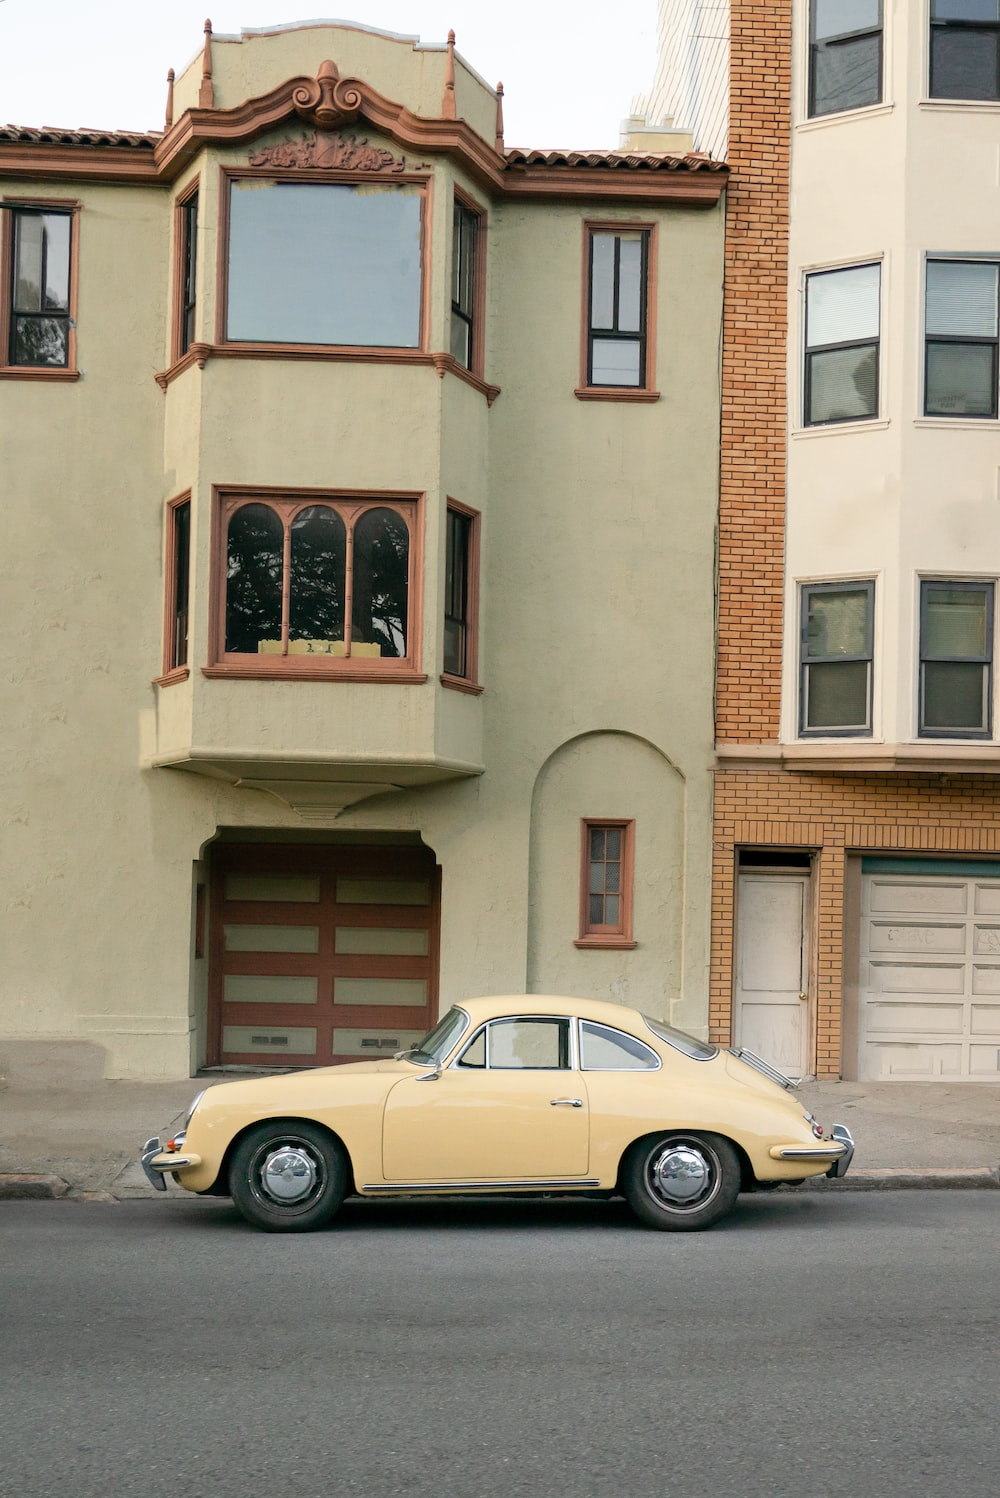 yellow coupe parked beside brown concrete building during daytime